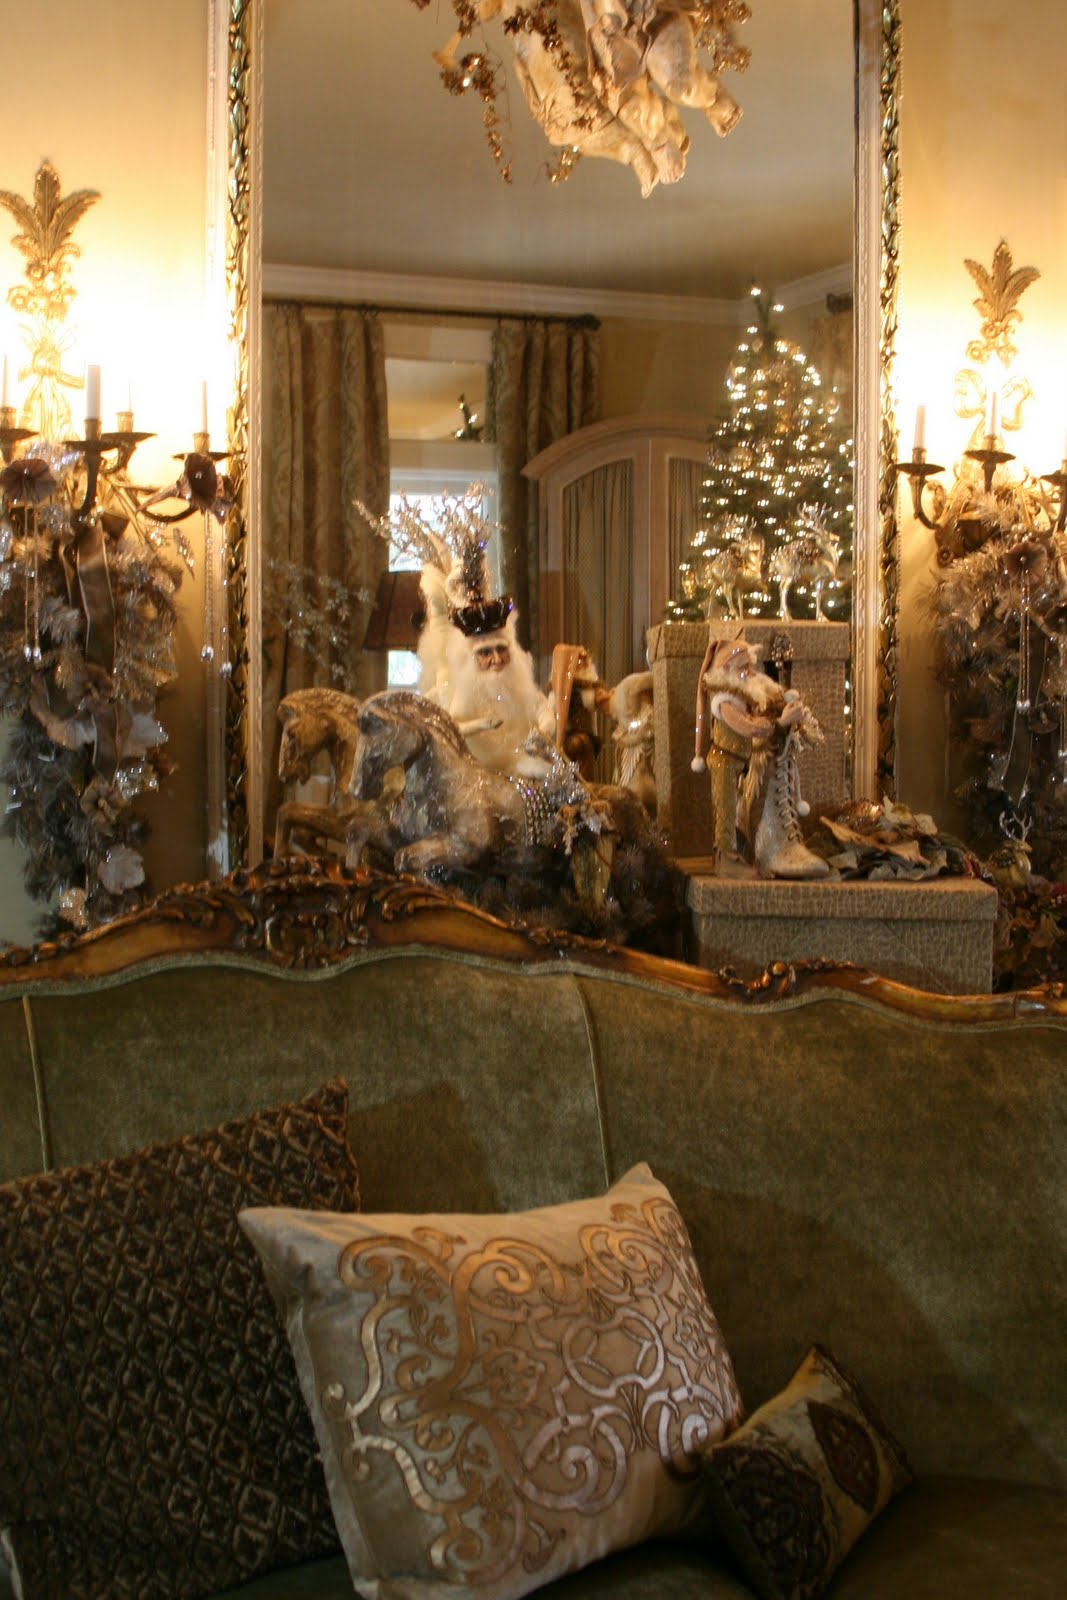 Romancing the home christmas decor for the living room - Christmas living room decor ...